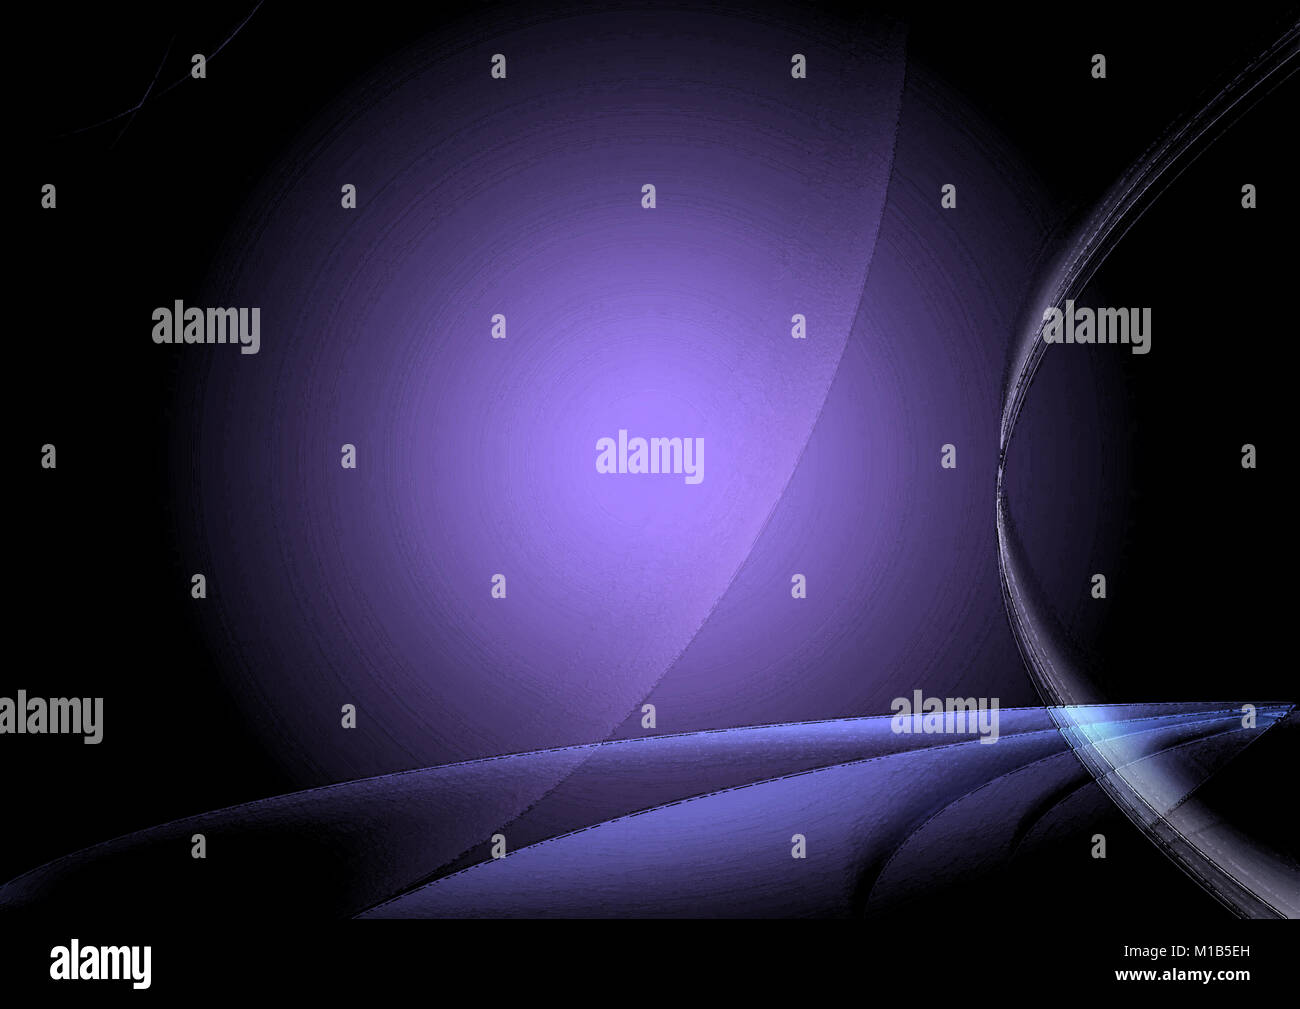 Abstract Background In Shades Of Purple